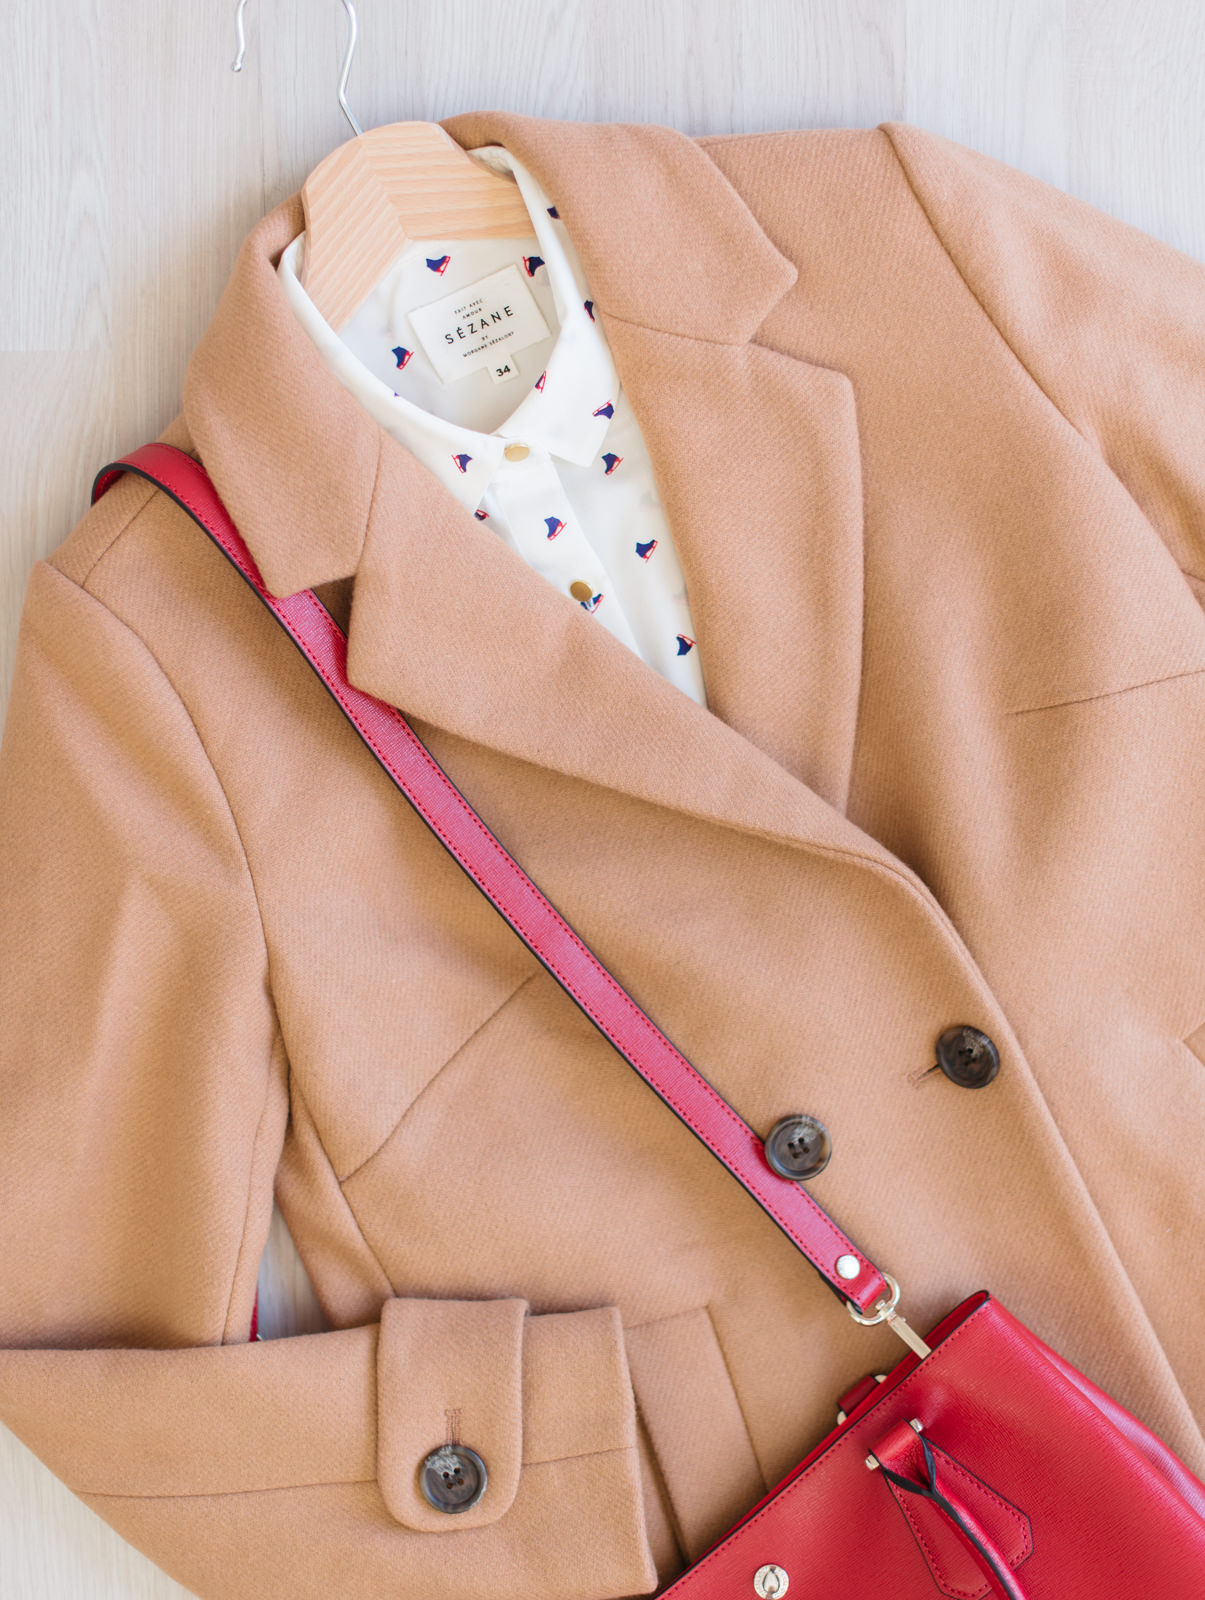 Blog-Mode-And-The-City-Lifestyle-Cinq-Petites-Choses-202-Chemise-Sezane-patins-manteau-beige-2two